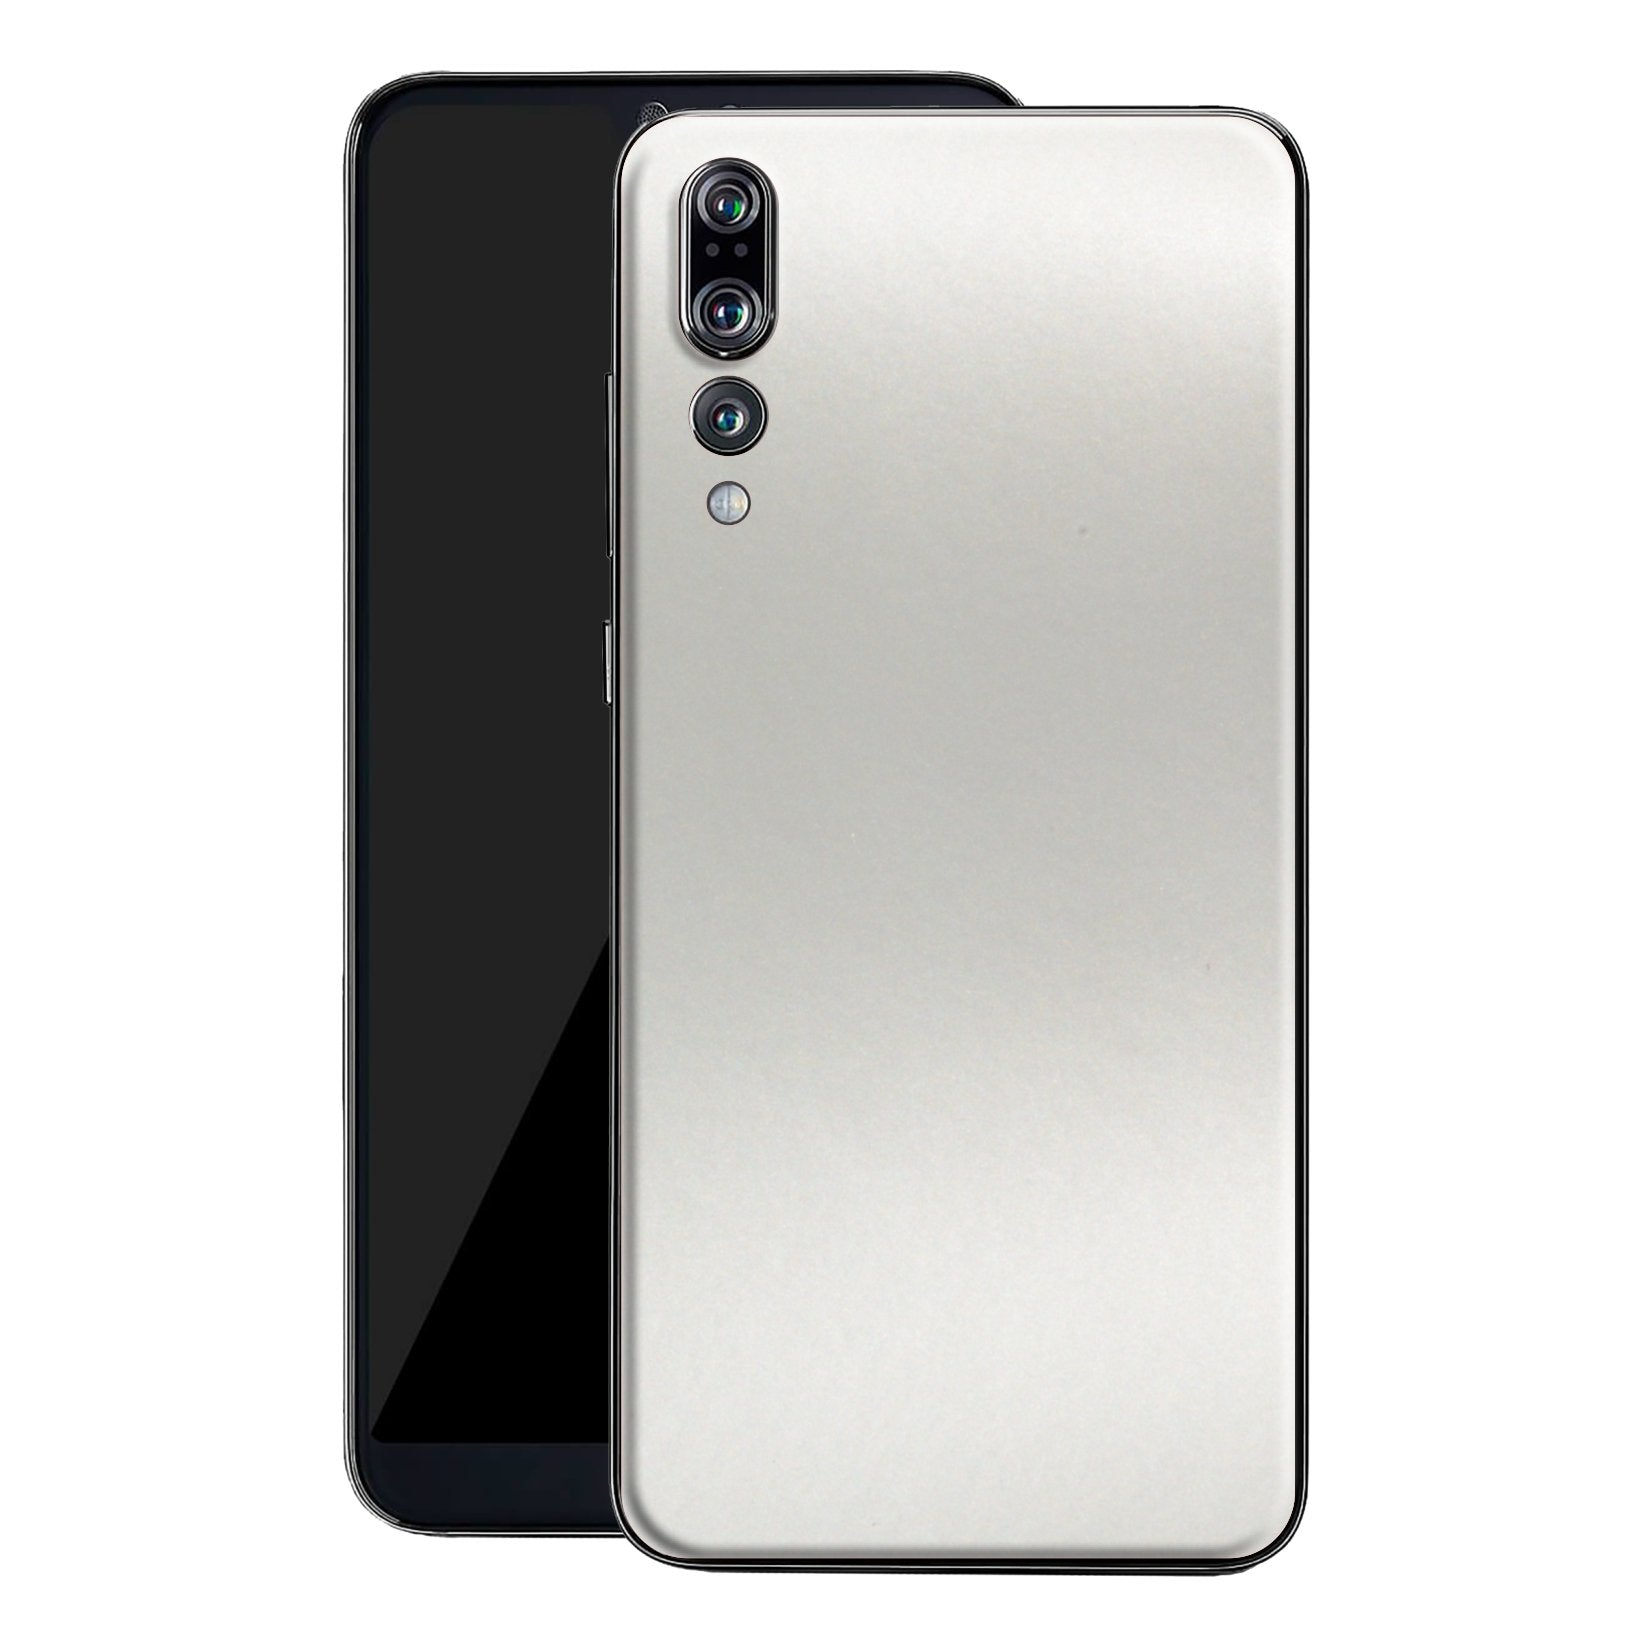 Huawei P20 PRO Satin Pearl White Matt Skin, Decal, Wrap, Protector, Cover by EasySkinz | EasySkinz.com